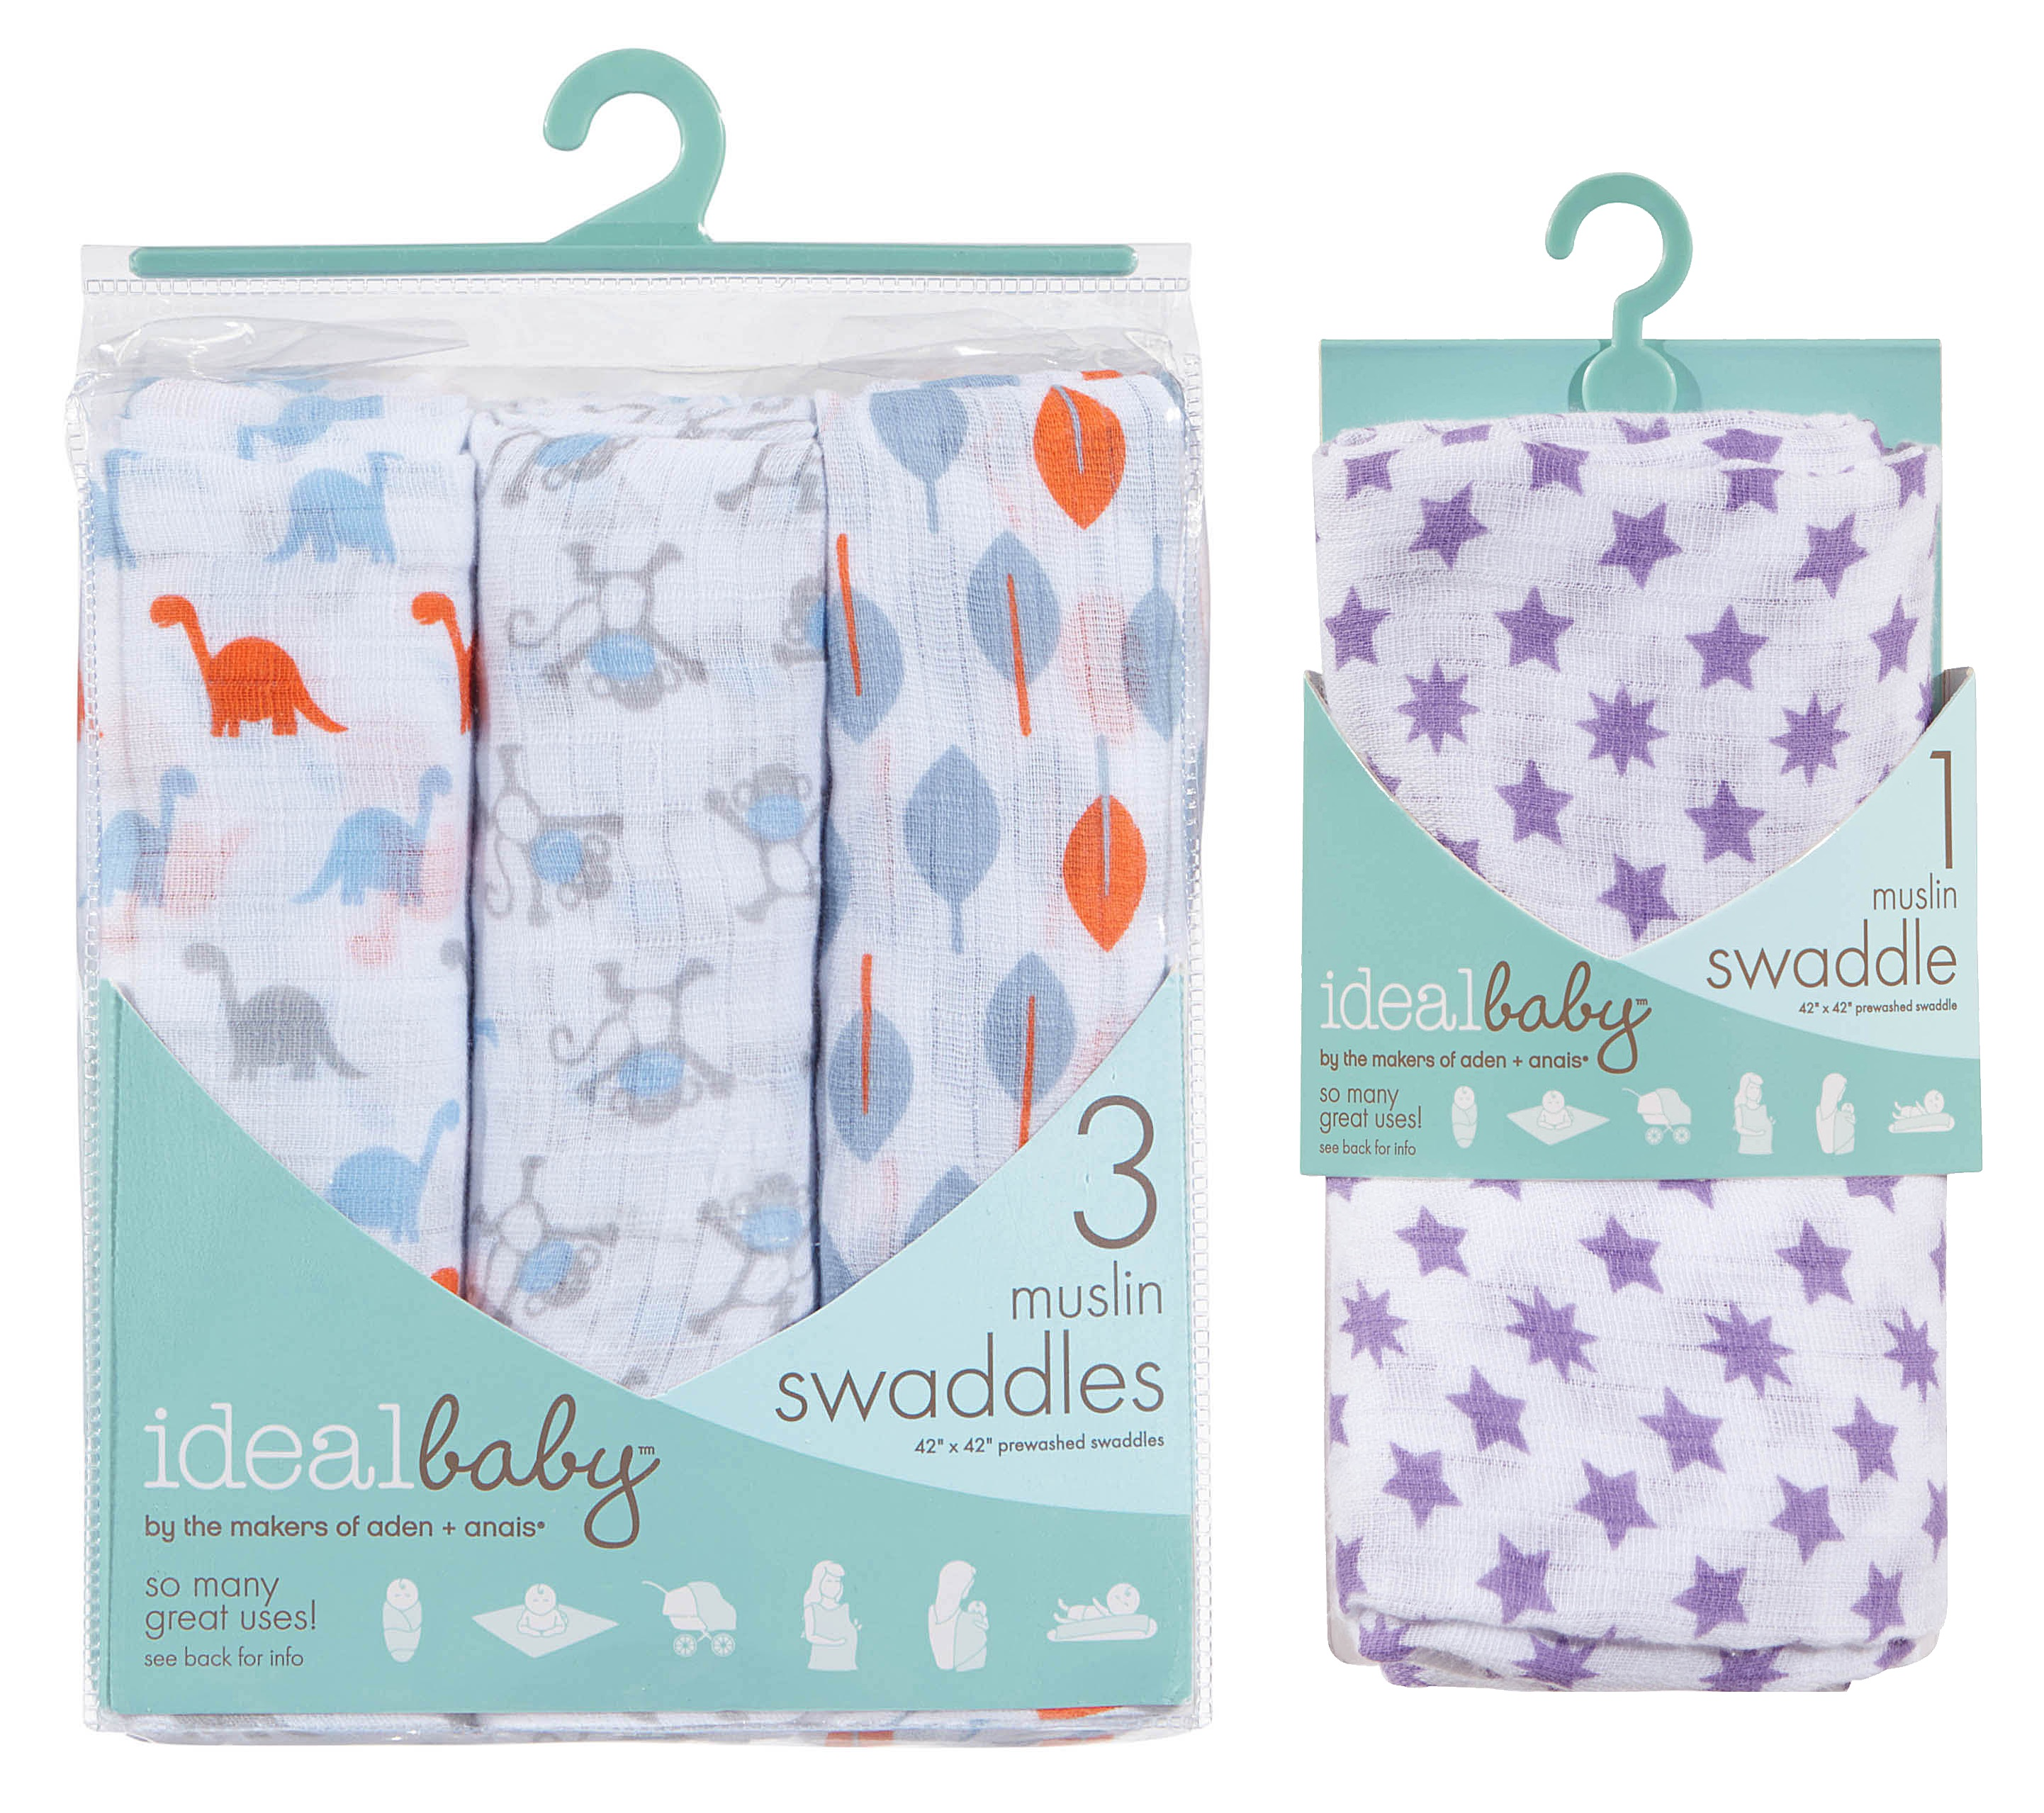 ideal-baby-swaddle copy